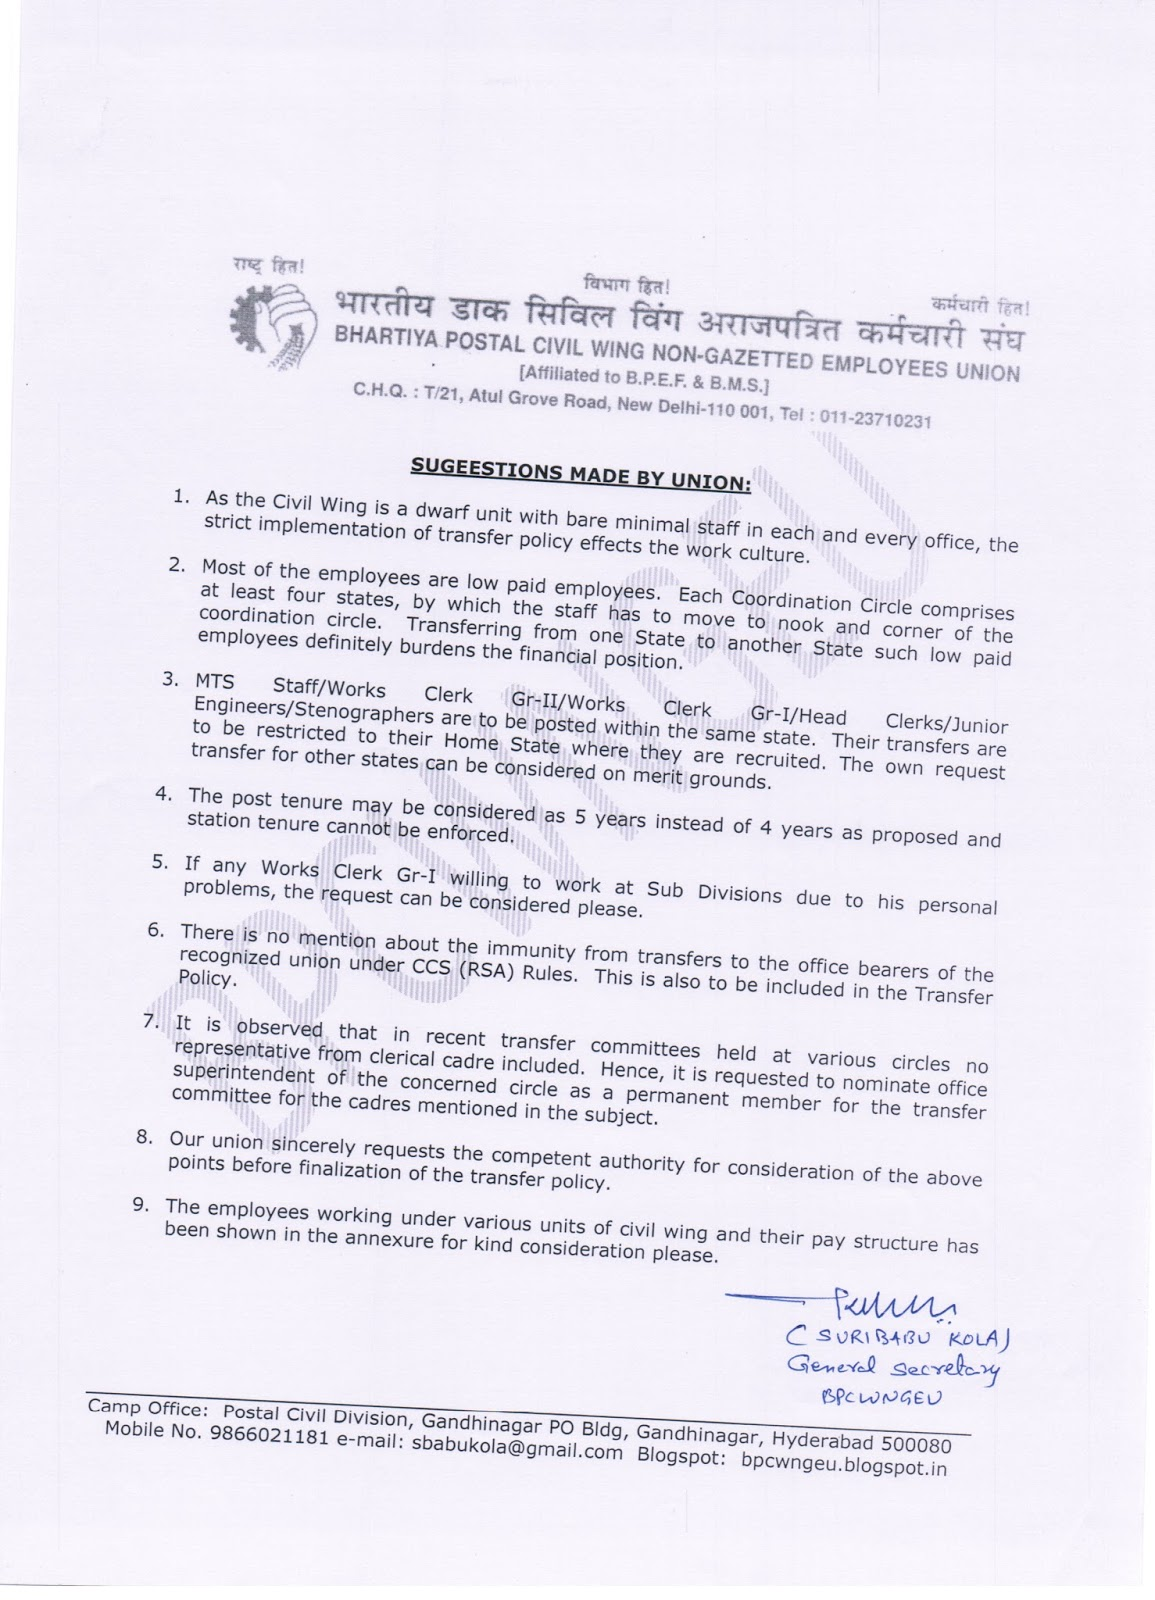 letter addressed to honble secretary department of posts on transfer policy of civil wing